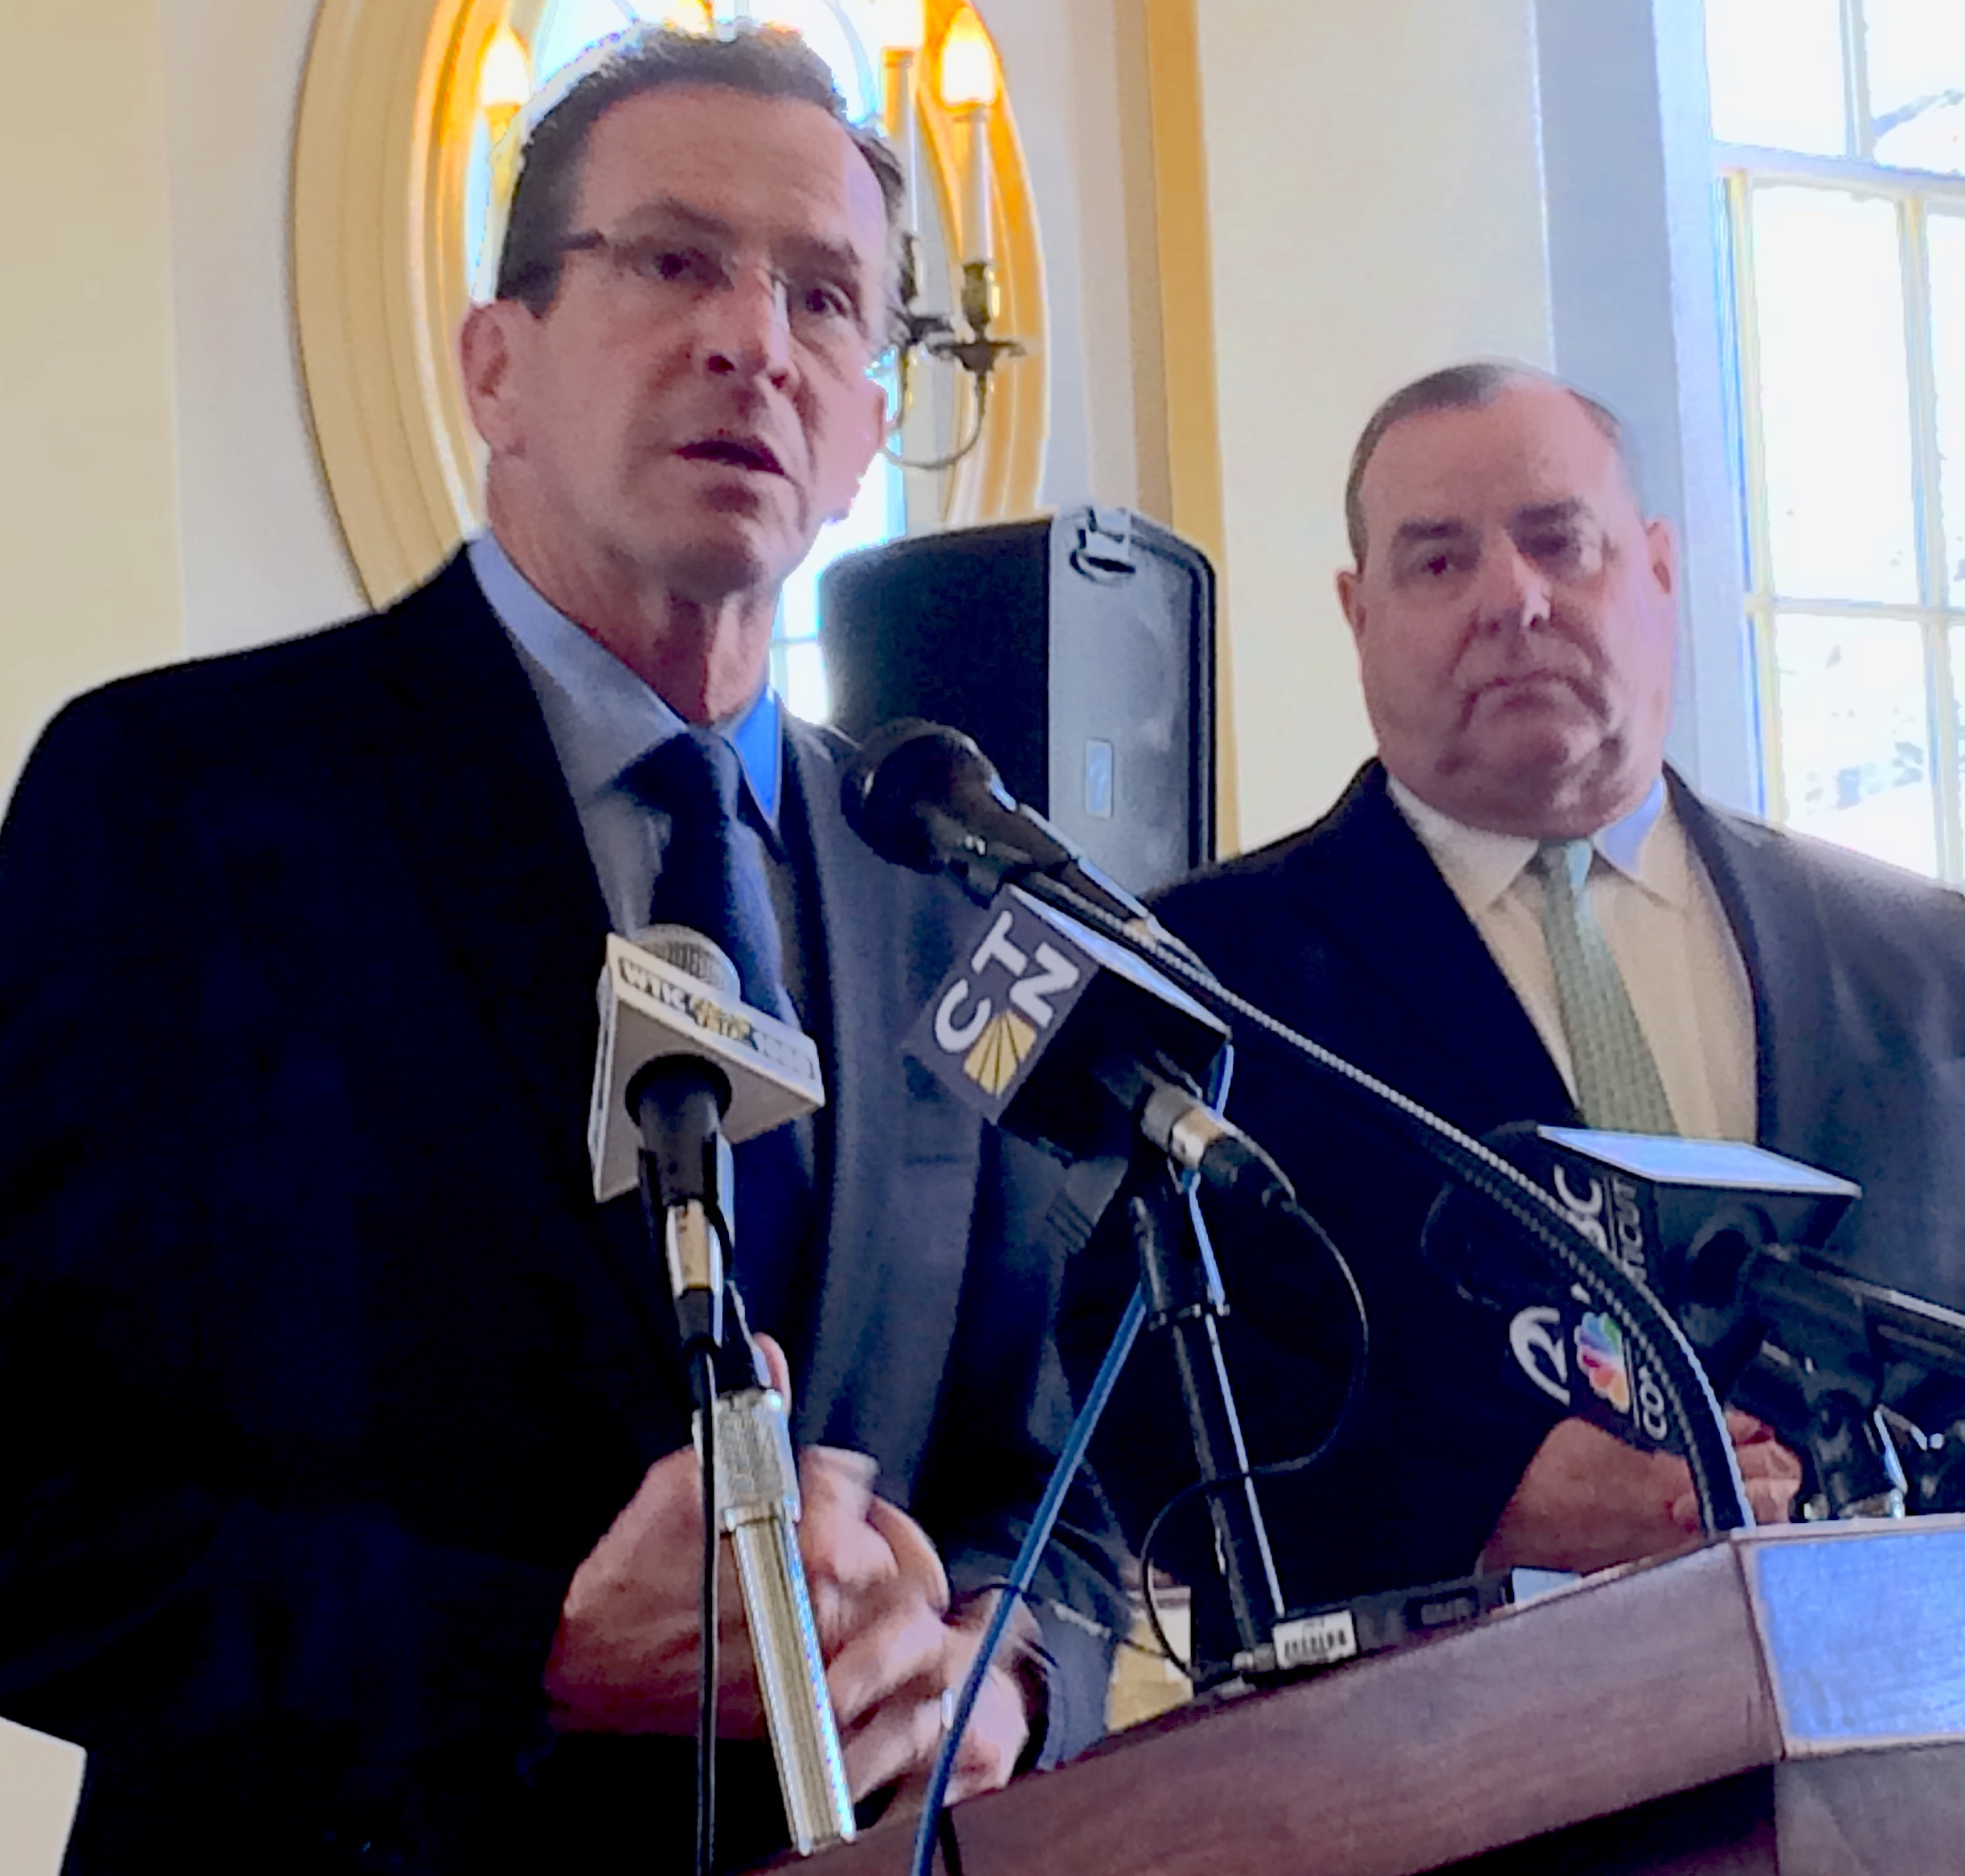 Malloy pitches early intervention for distressed communities